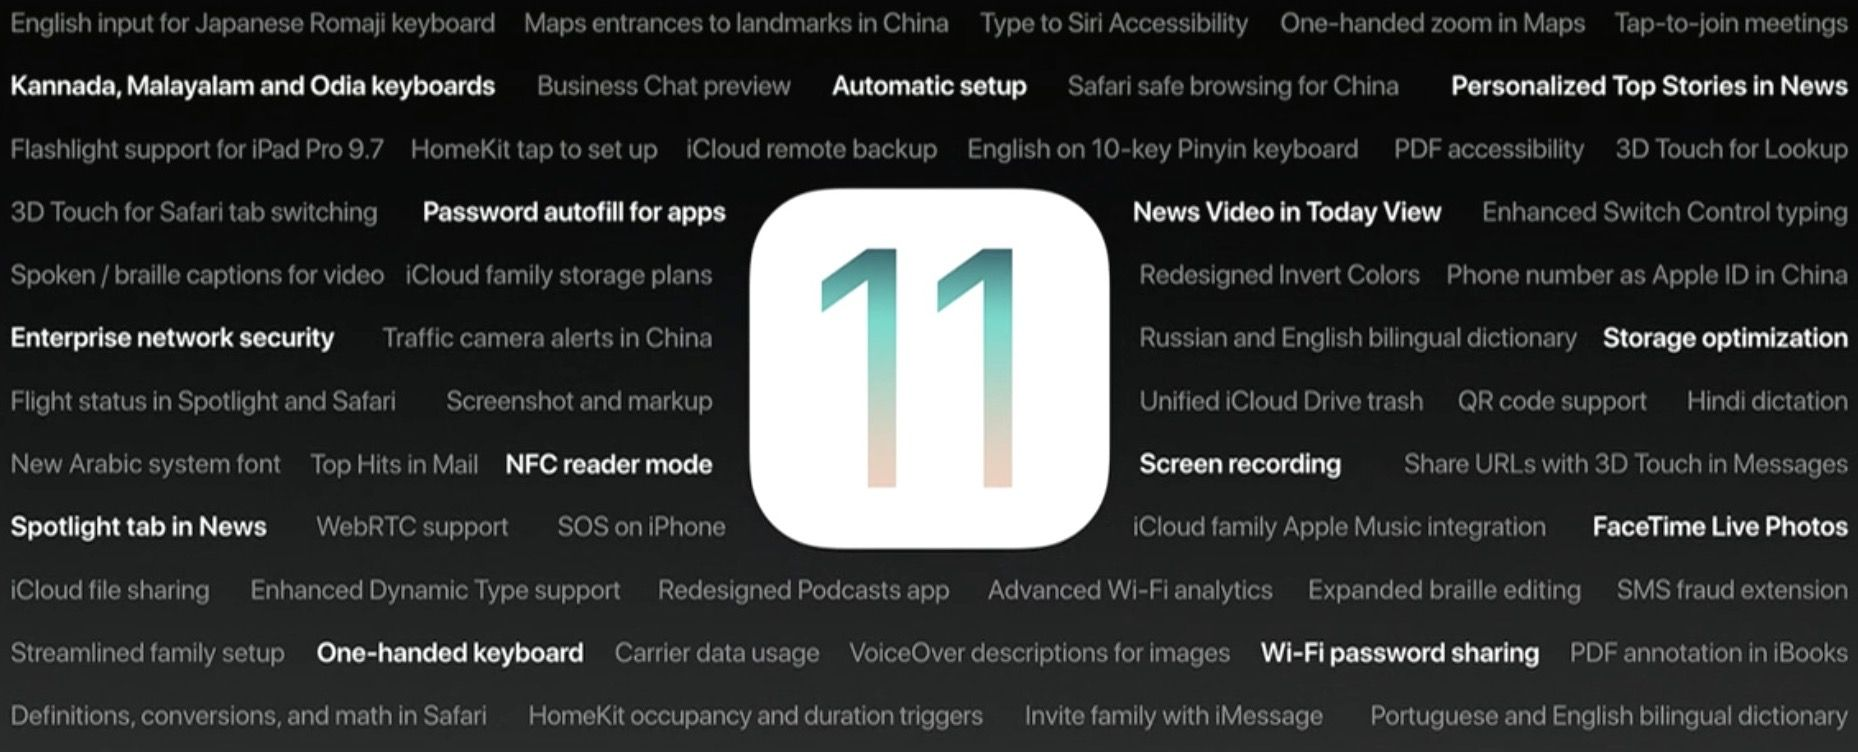 90+ new features shipping with iOS 11 this Fall Ios 11